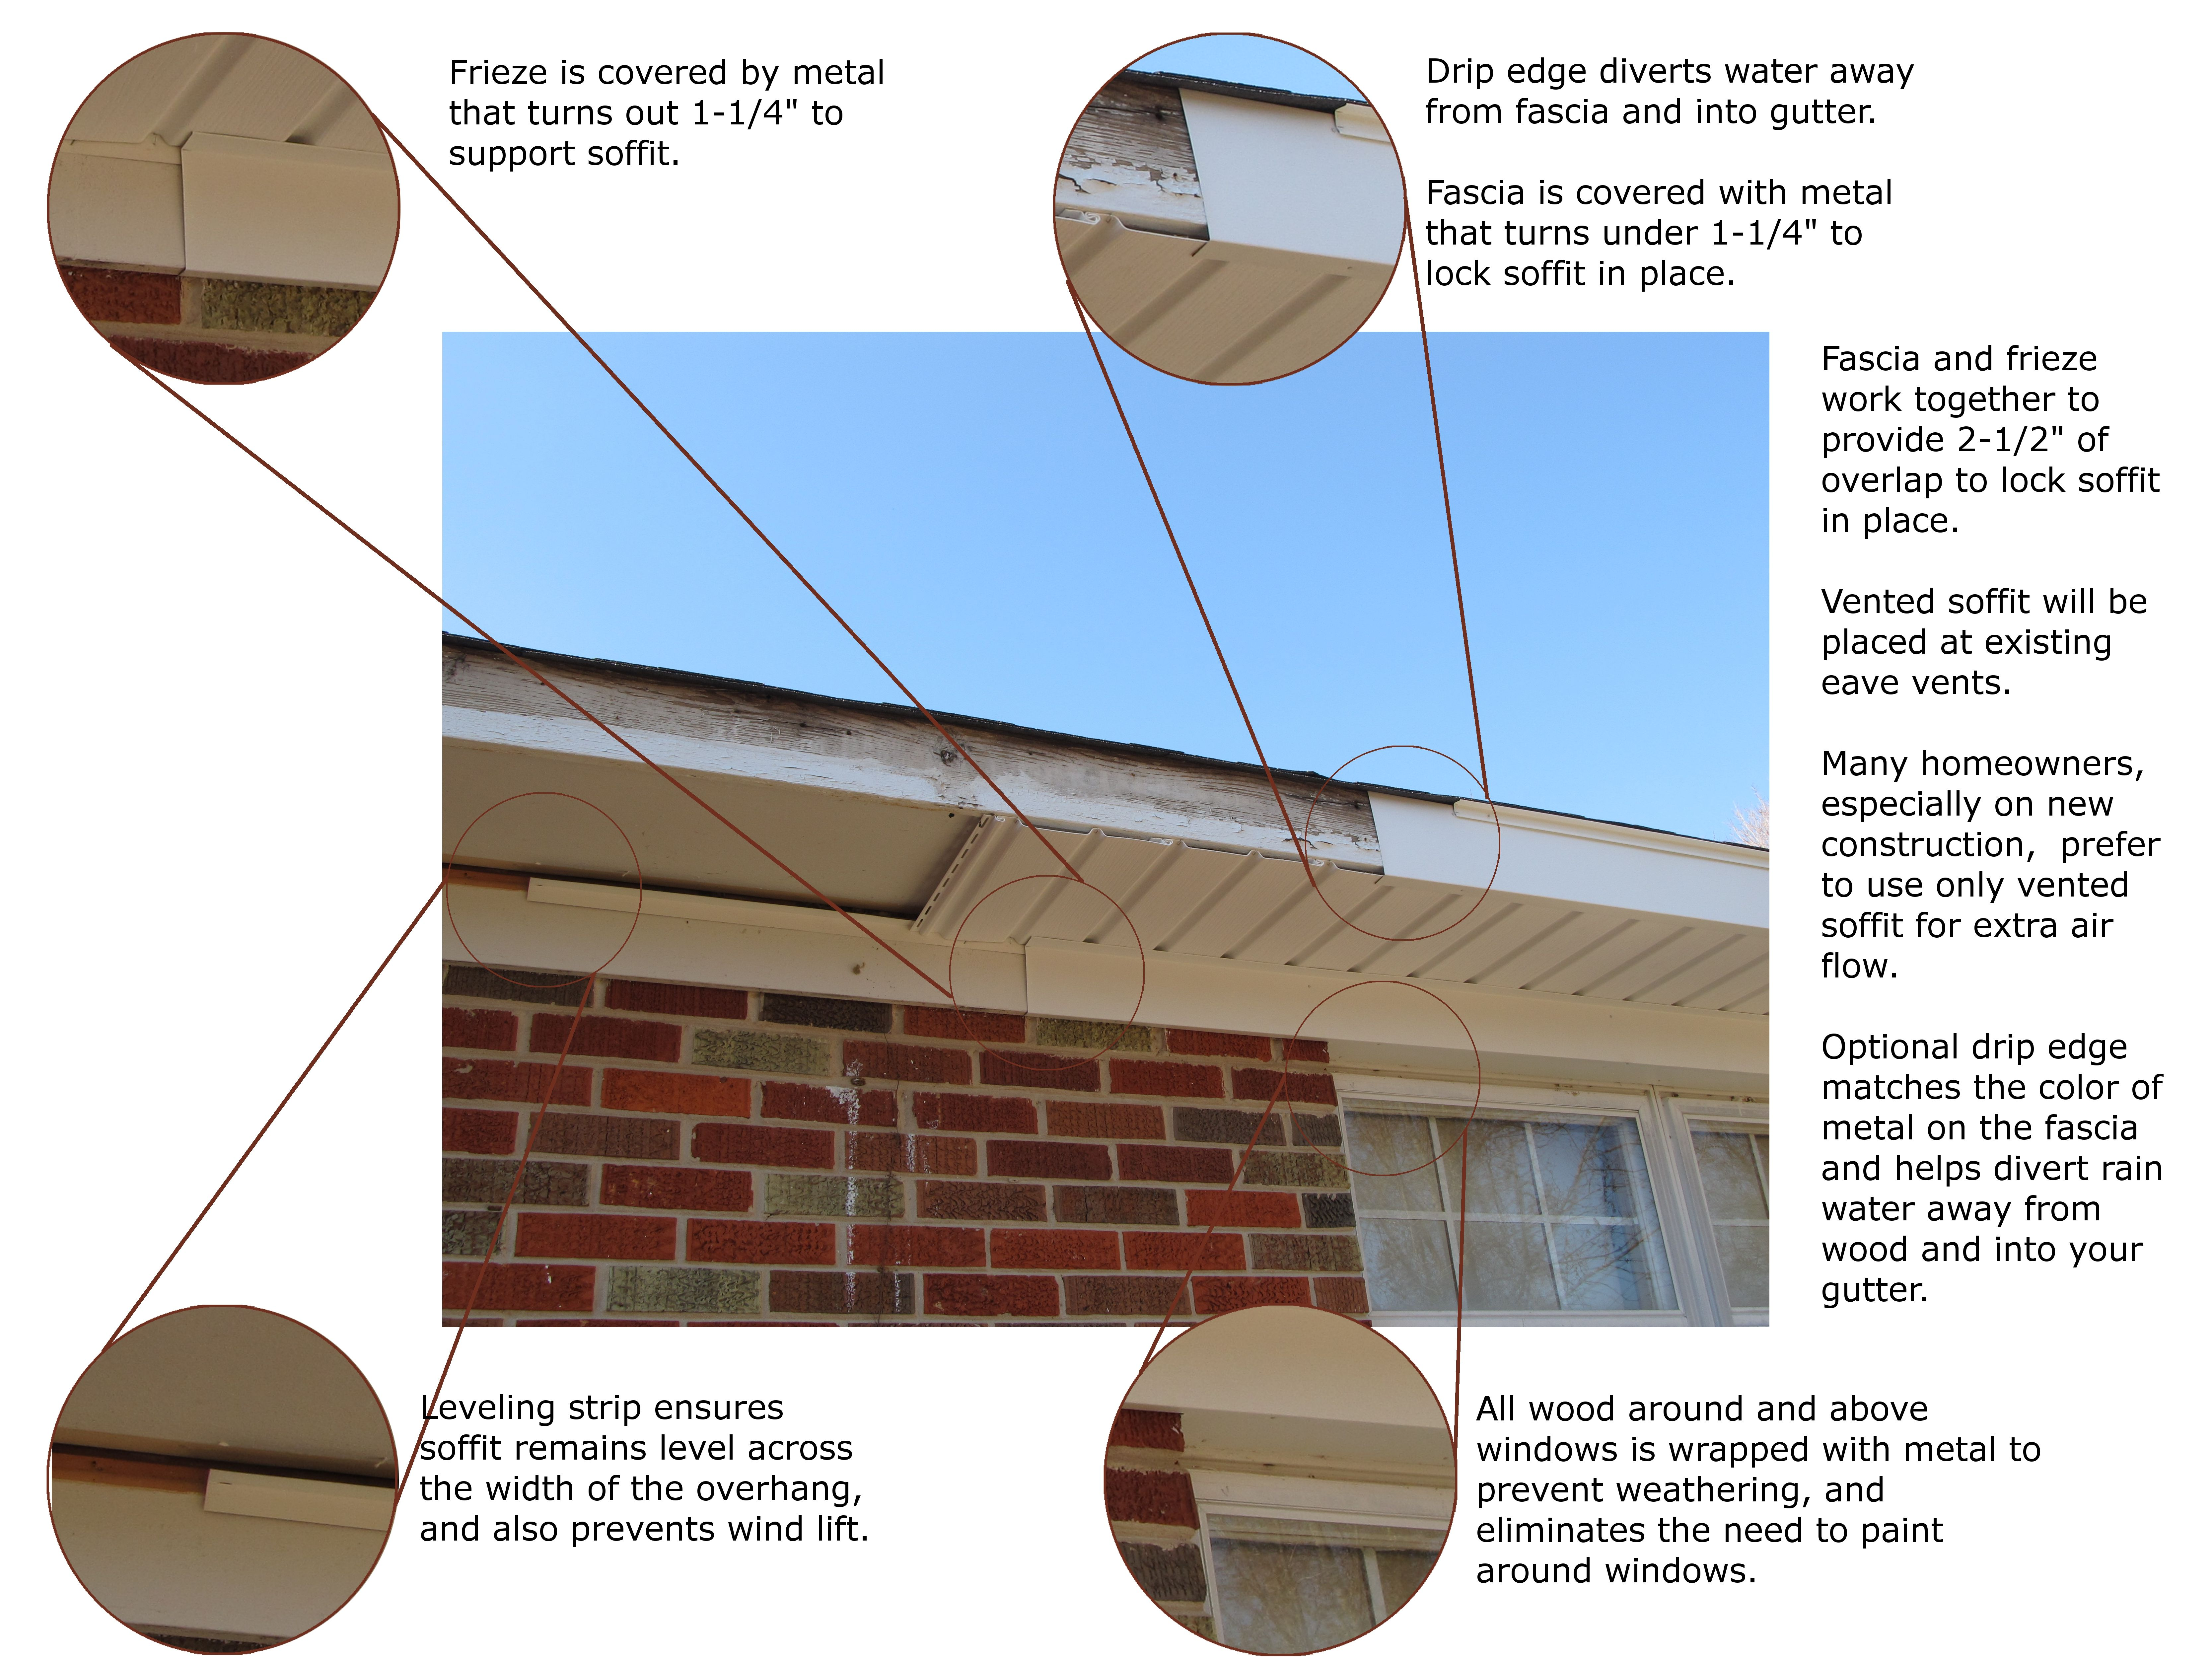 Vinyl soffit & aluminum trim coil work together to protect